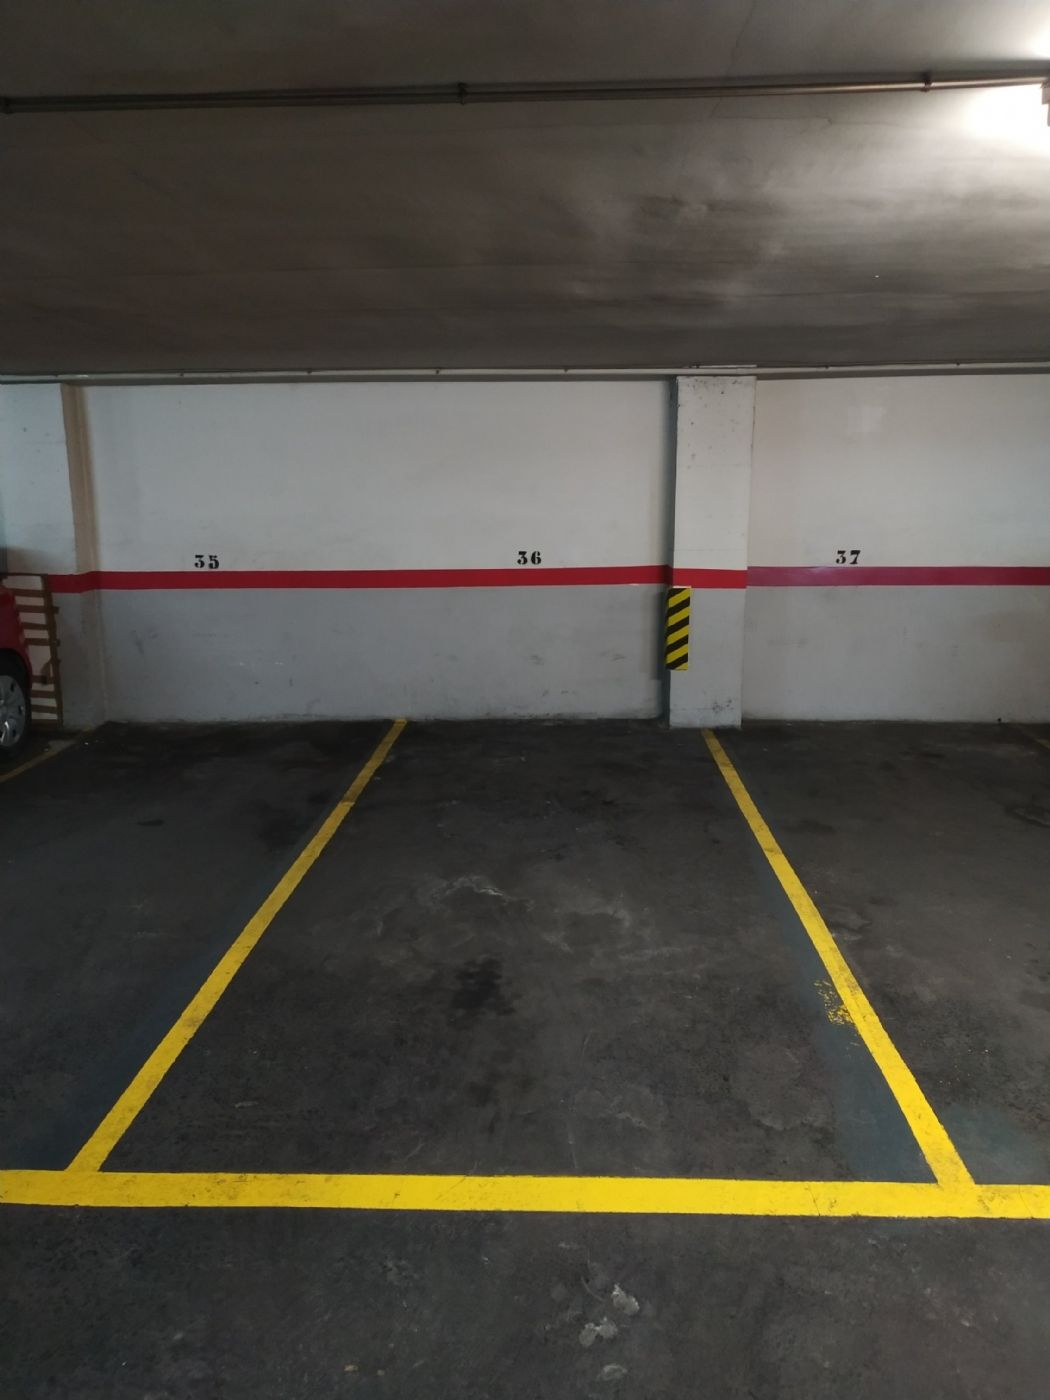 Motorcycle parking in Rovellat, 7. Alquiler parking para moto o coche